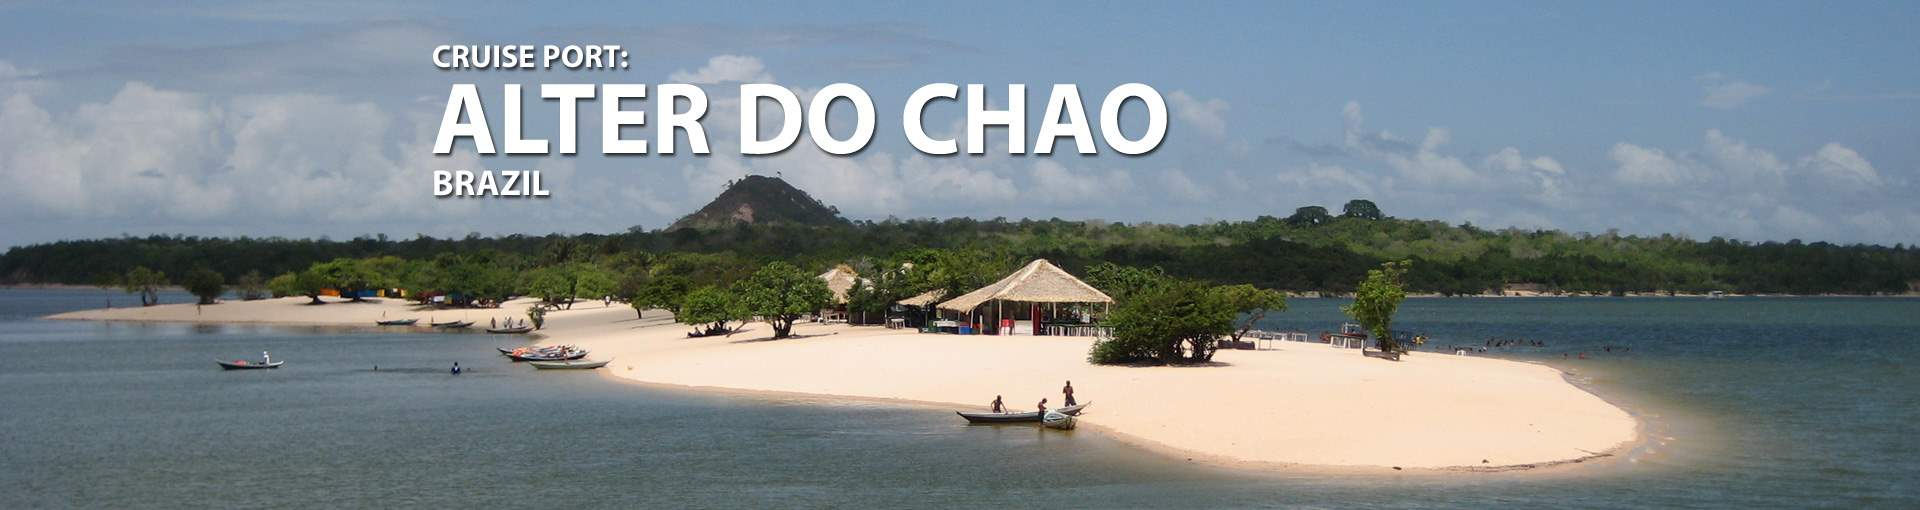 Cruises to Alter Do Chao, Brazil